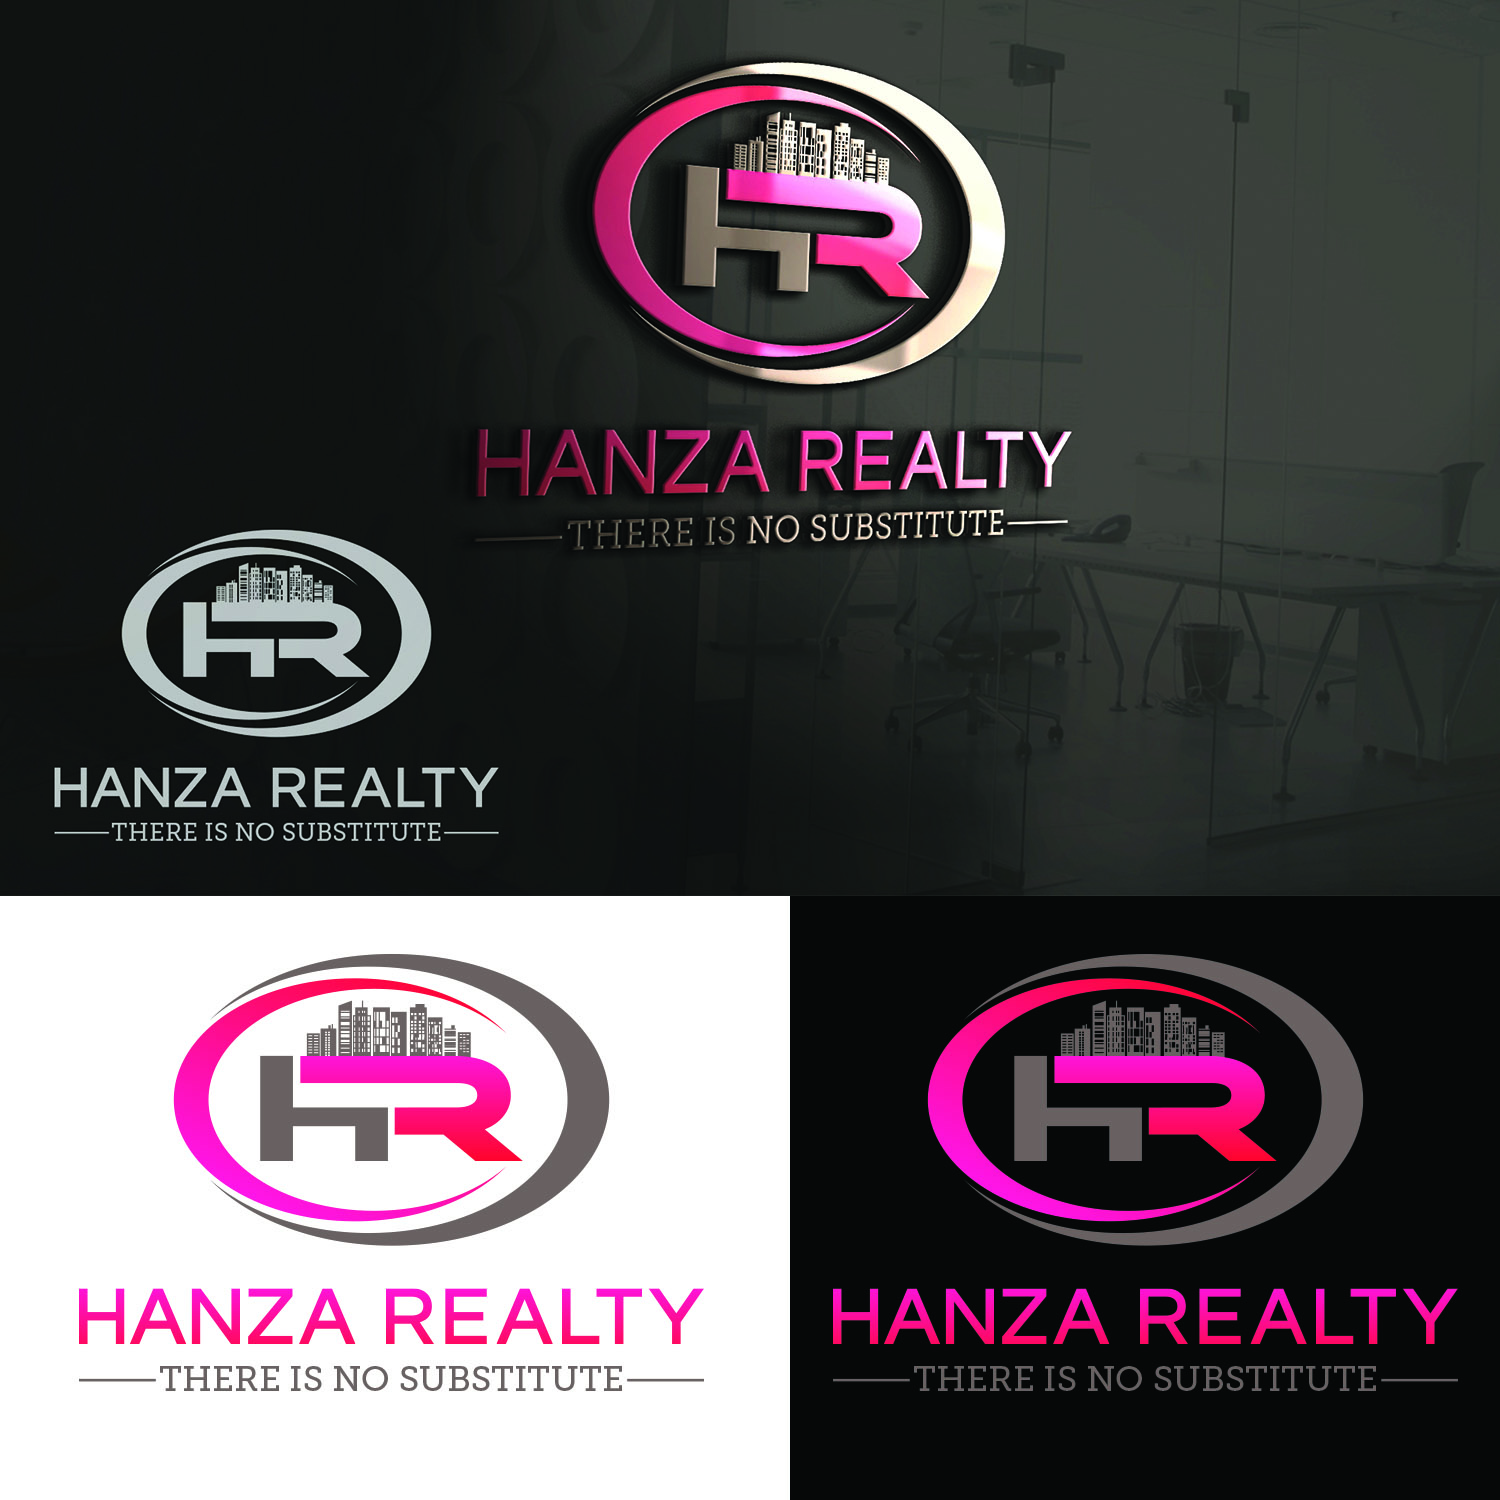 Logo Design by Umair ahmed Iqbal - Entry No. 318 in the Logo Design Contest Logo Design for Hanza Realty.